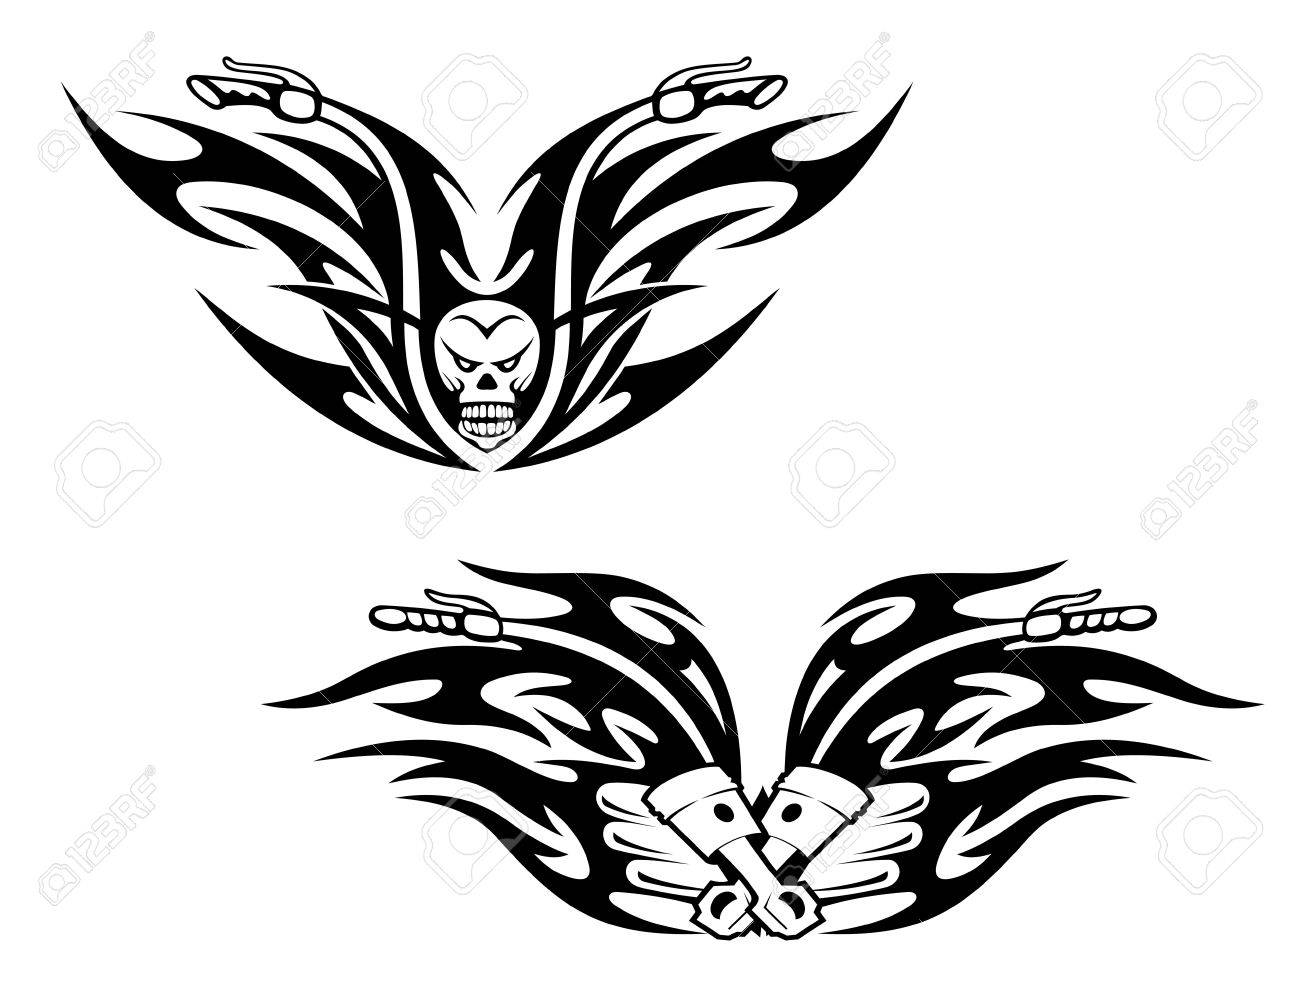 Black Bikes Tattoos With Flames And Graphic Elements Royalty Free